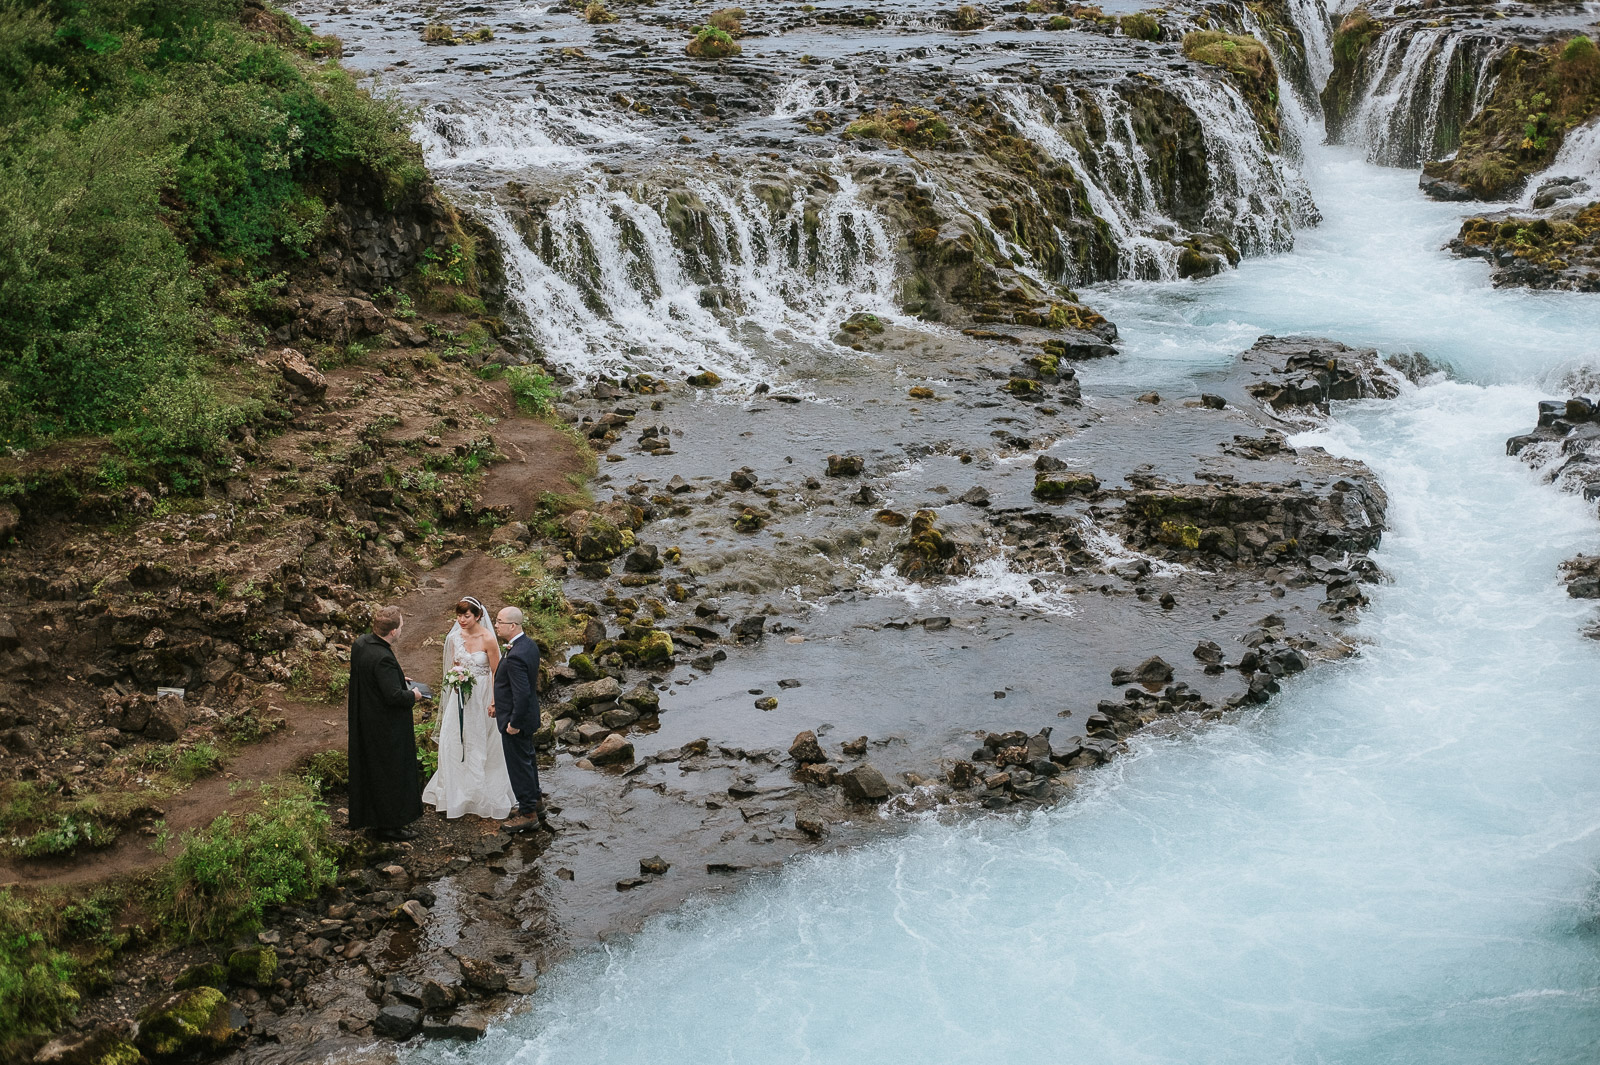 21-iceland-elopement-ceremony-waterfall